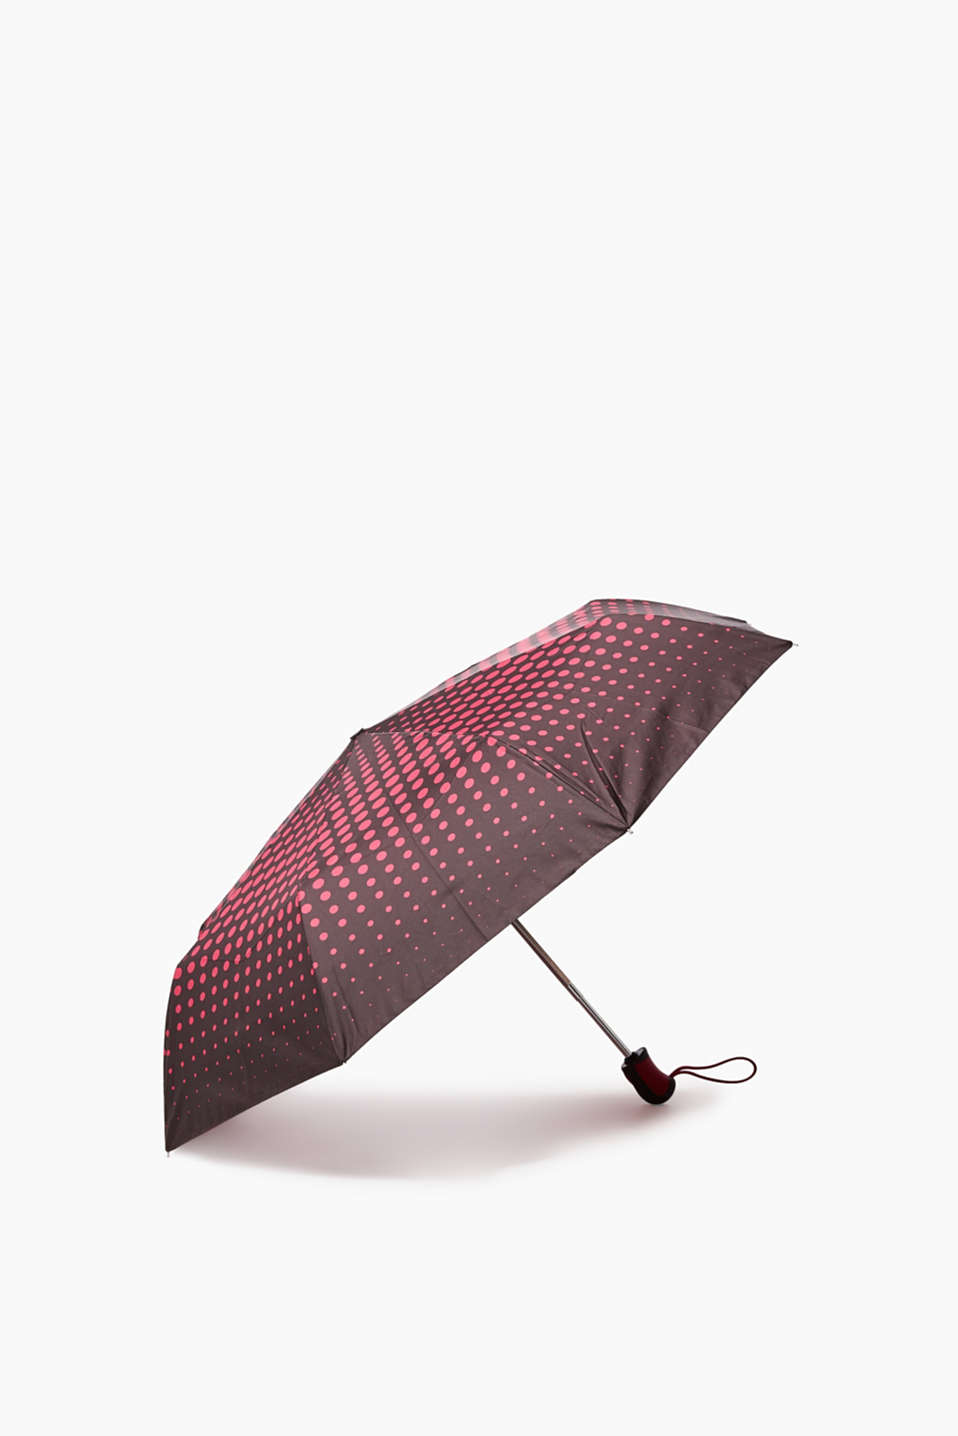 Lightweight umbrella in a handy size with a push/pull runner